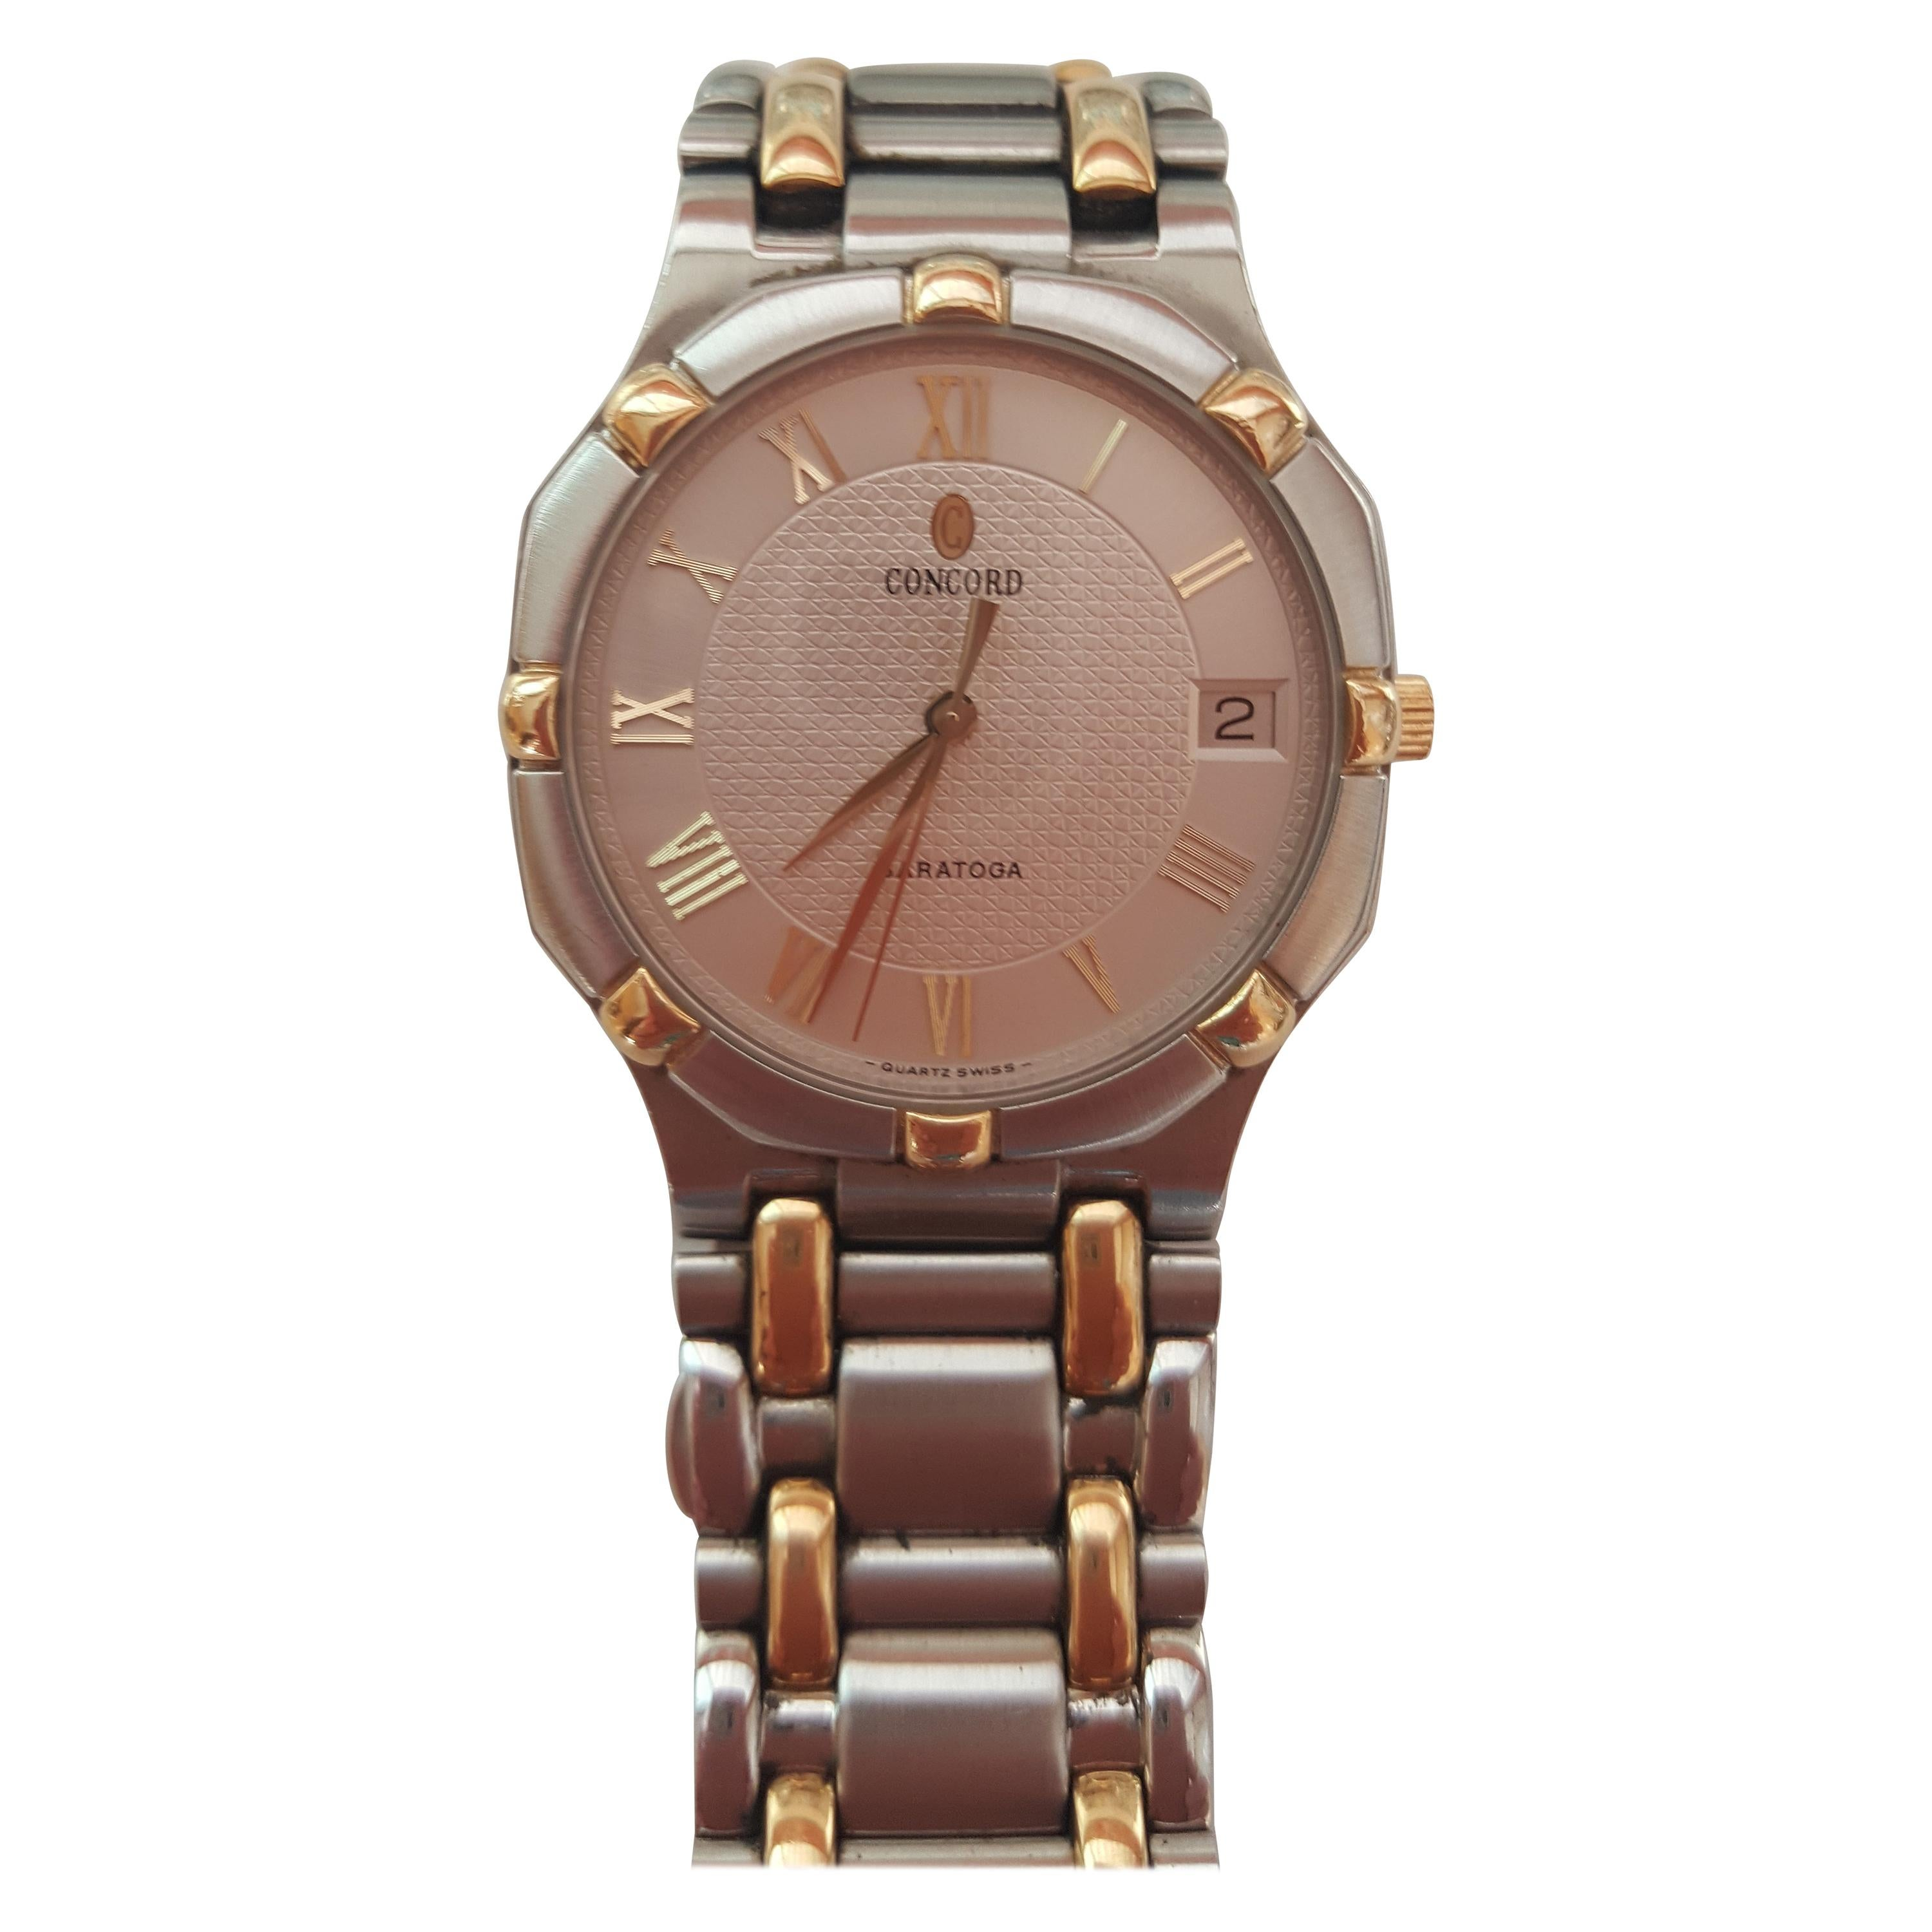 Concord Saratoga Men's Watch Gold and Stainless Steel 1558237 18 Karat